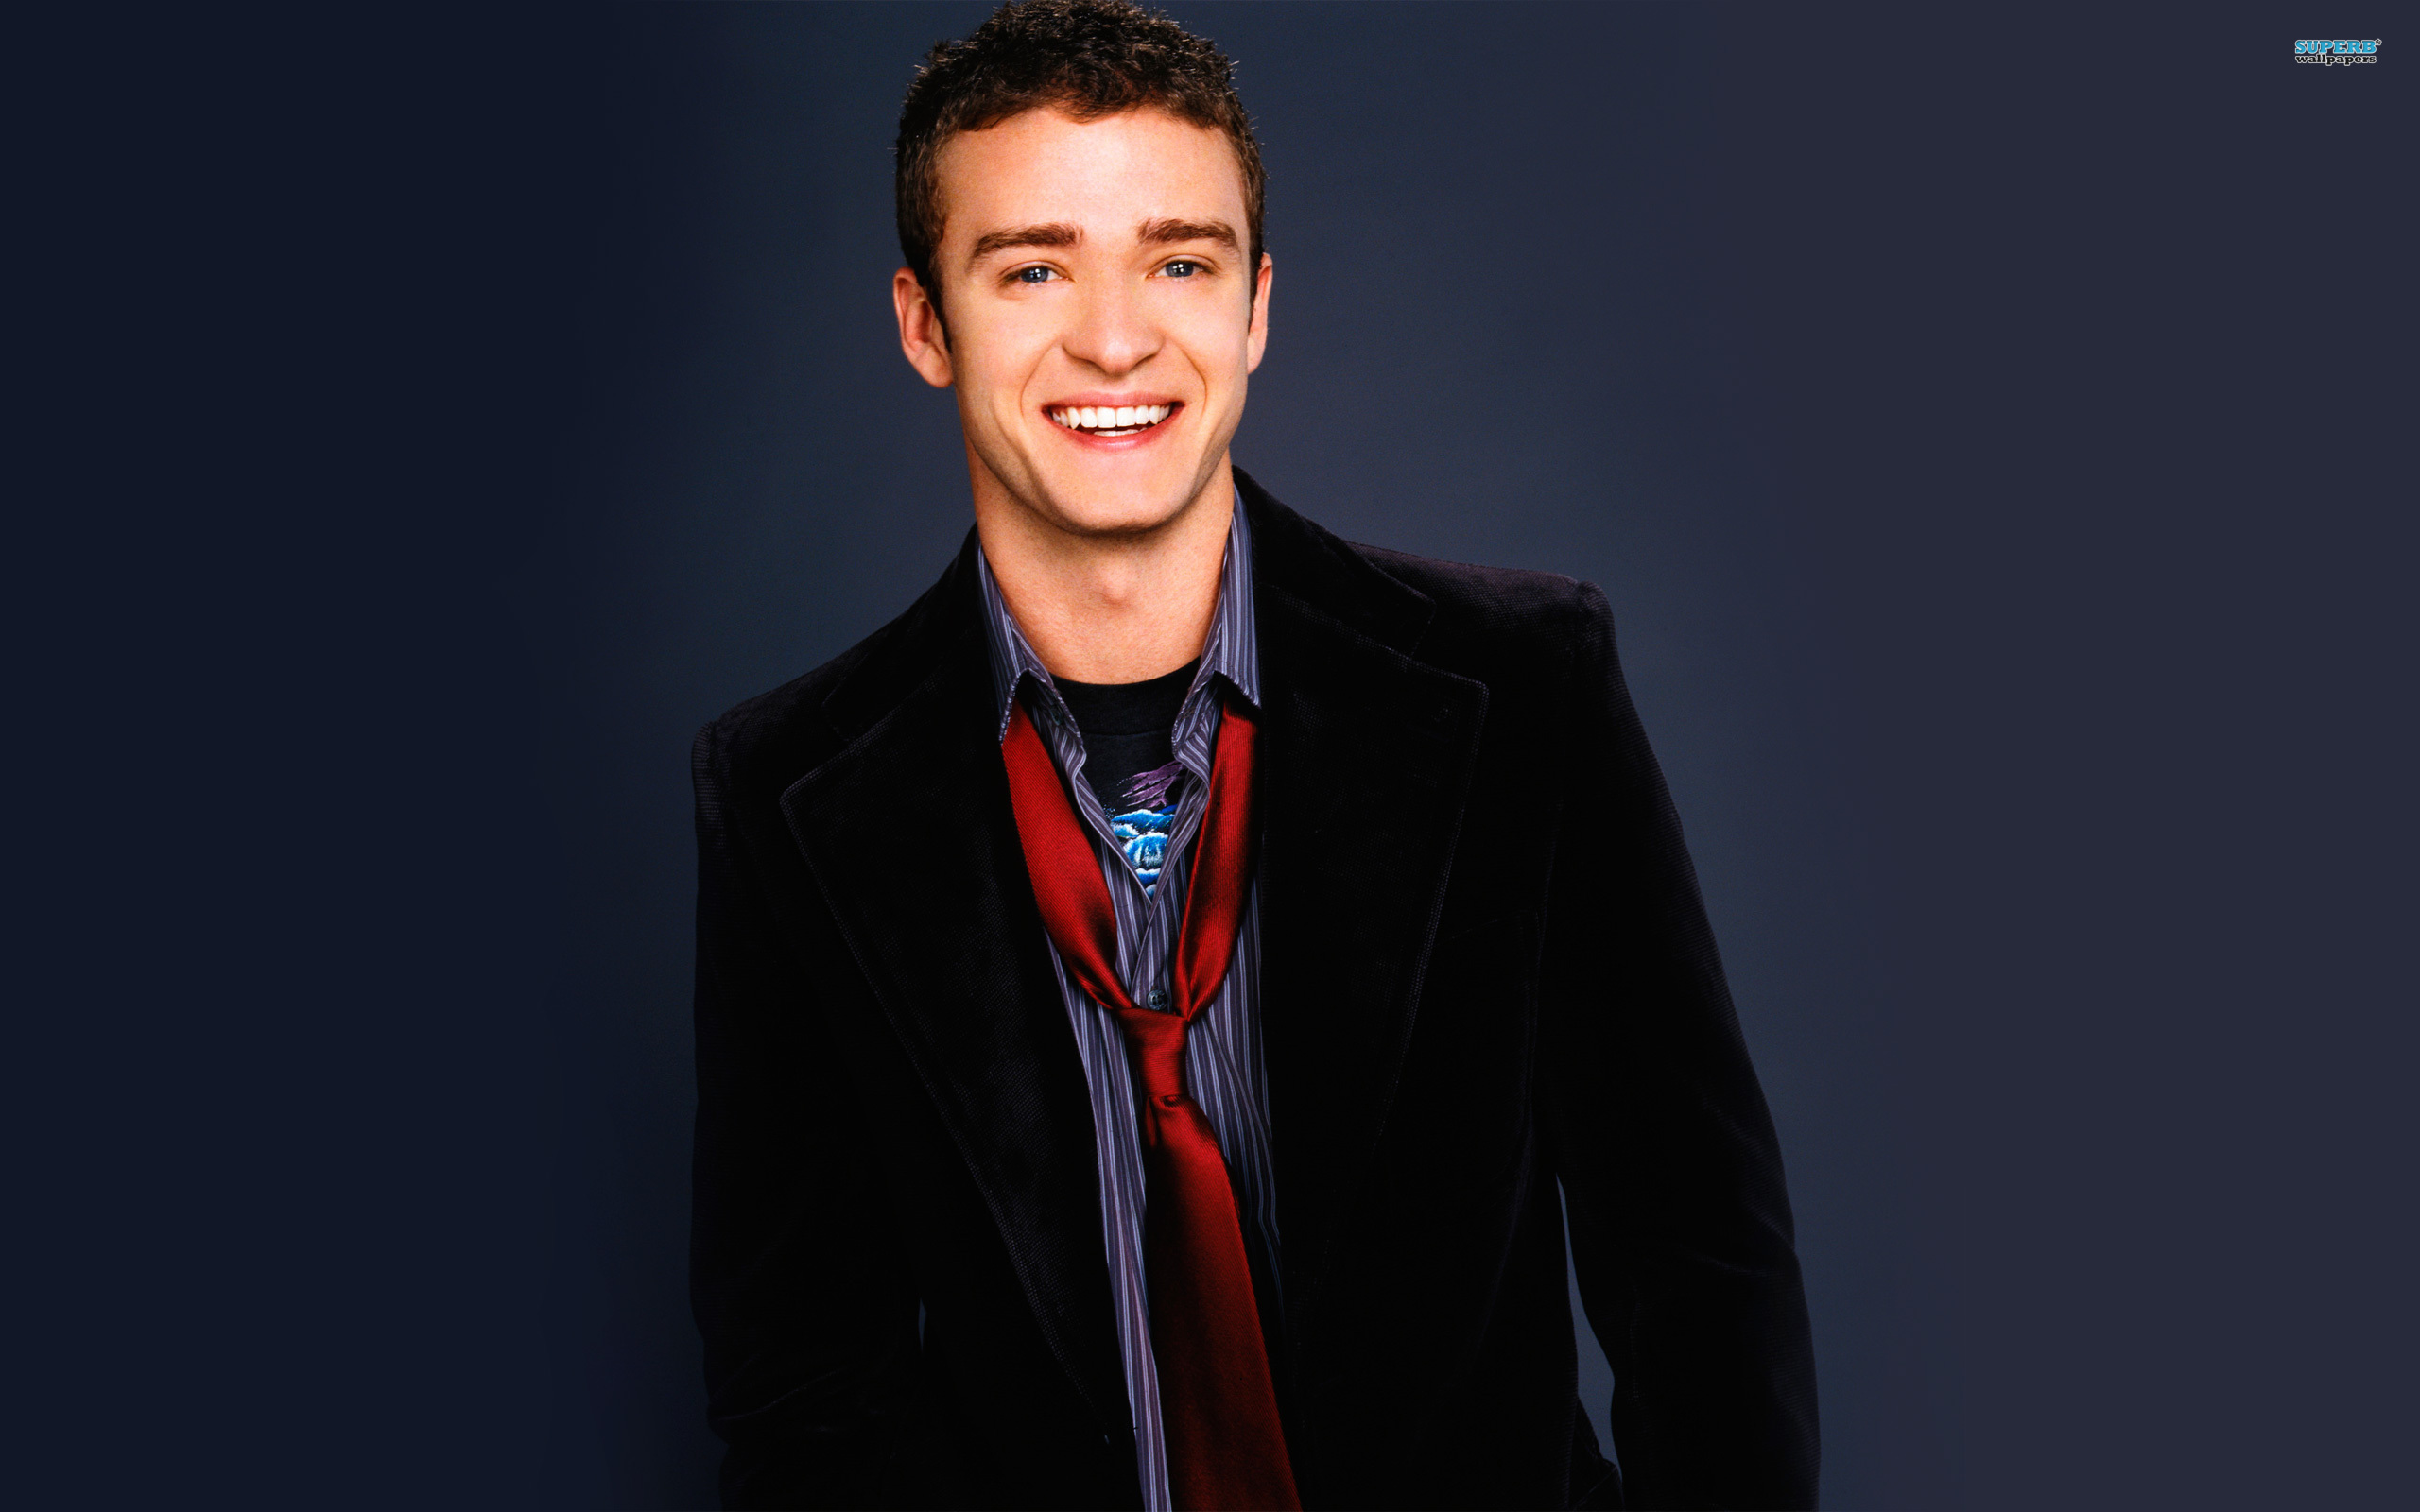 Justin Timberlake Hd Wallpaper 40193